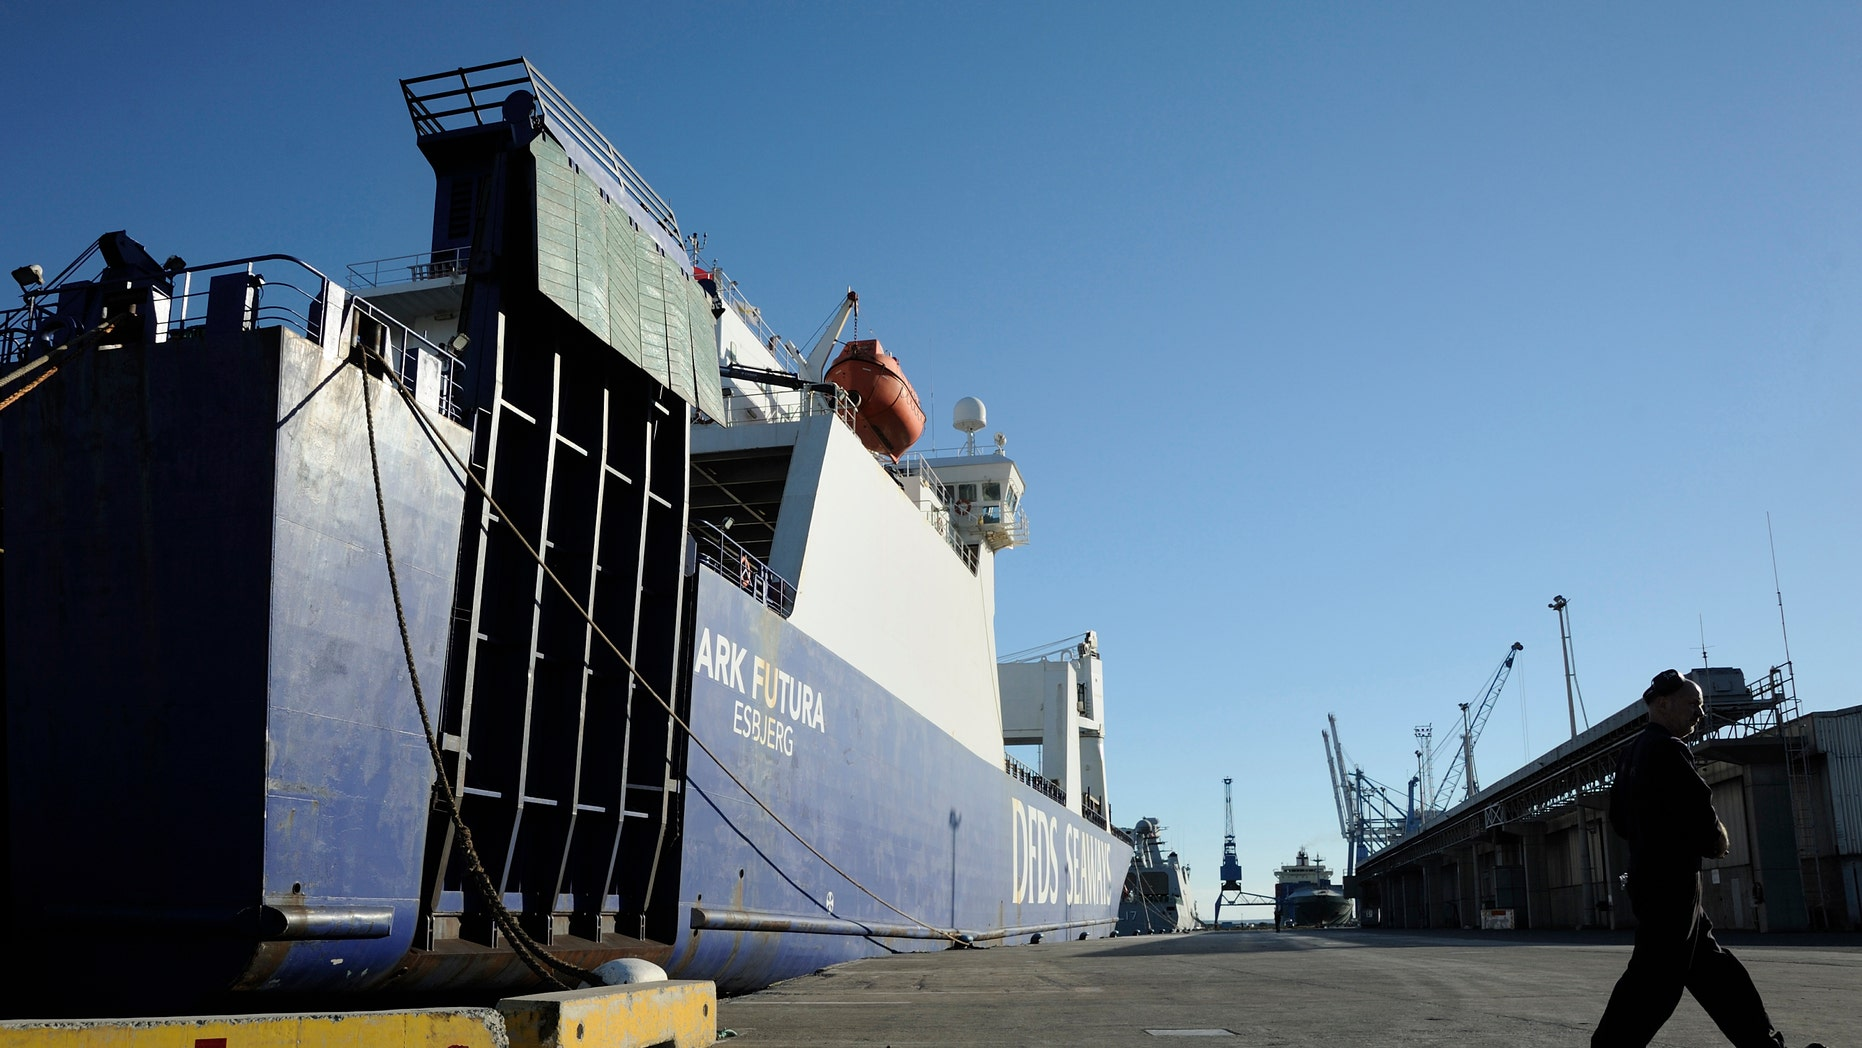 The Danish cargo ship Ark Futura, which will take part in a joint Danish-Norwegian mission to transport Syria's chemical weapons out of the strife-torn country, lies docked at Cyprus' Limassol port on Saturday, December 14, 2013.(AP Photo/Pavlos Vrionides)